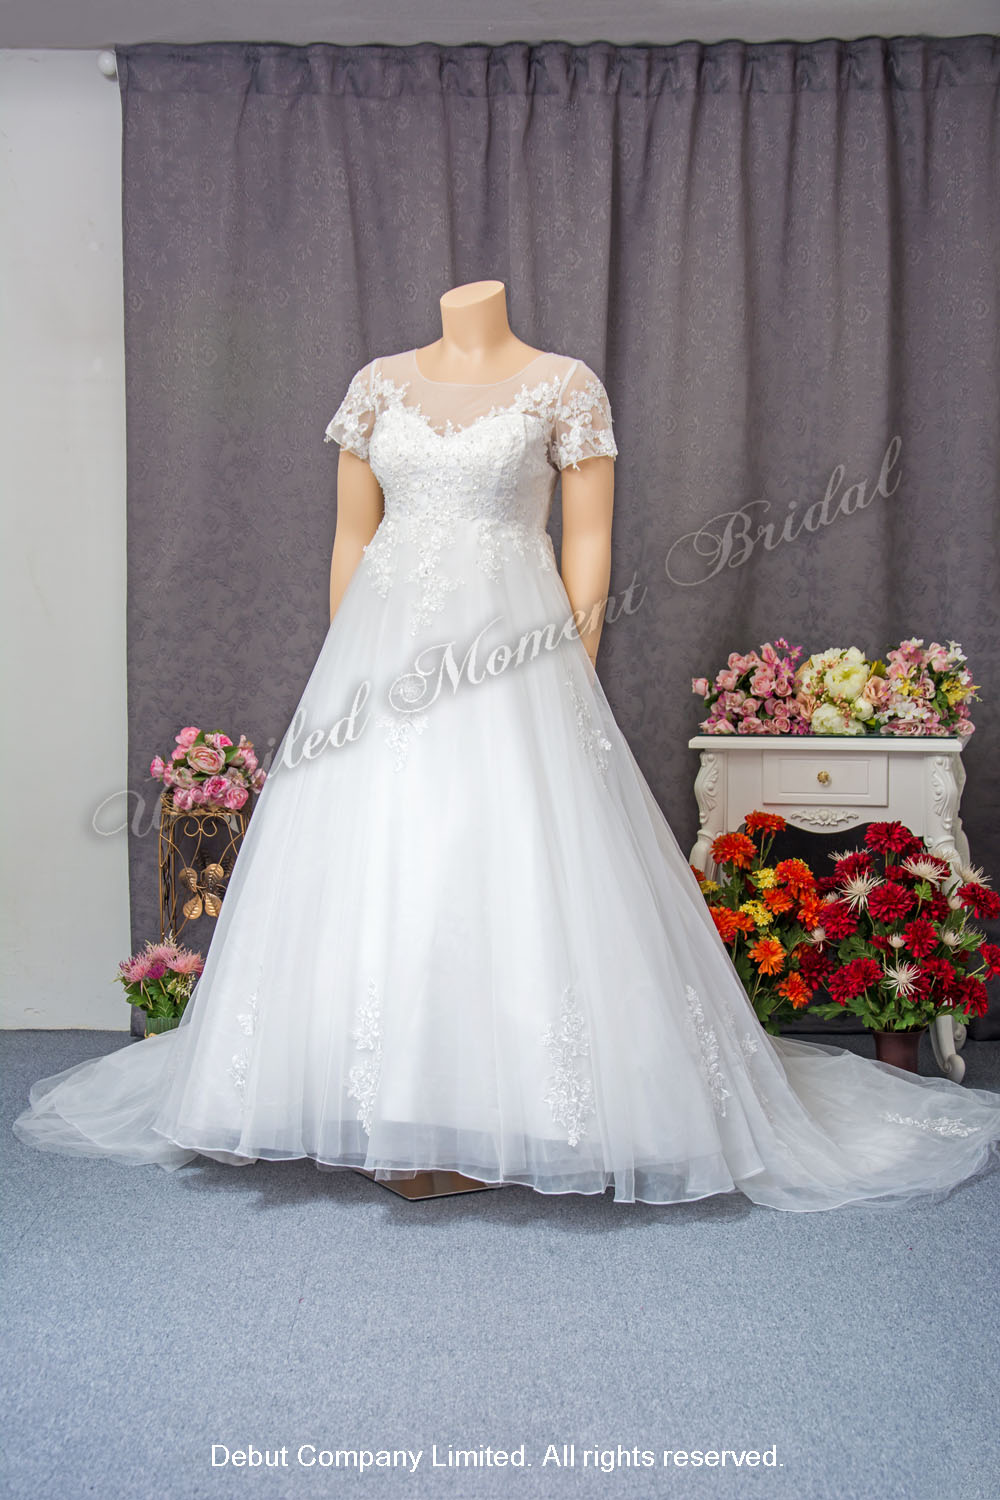 Lace applique embellishments, See-through sweetheart neckline, See-through short sleeves, A-line wedding dress with court train. Size: XL / XXL / plus size 蕾絲釘珠, 透視圓領短袖, 心形胸, A-line拖尾加大碼婚紗